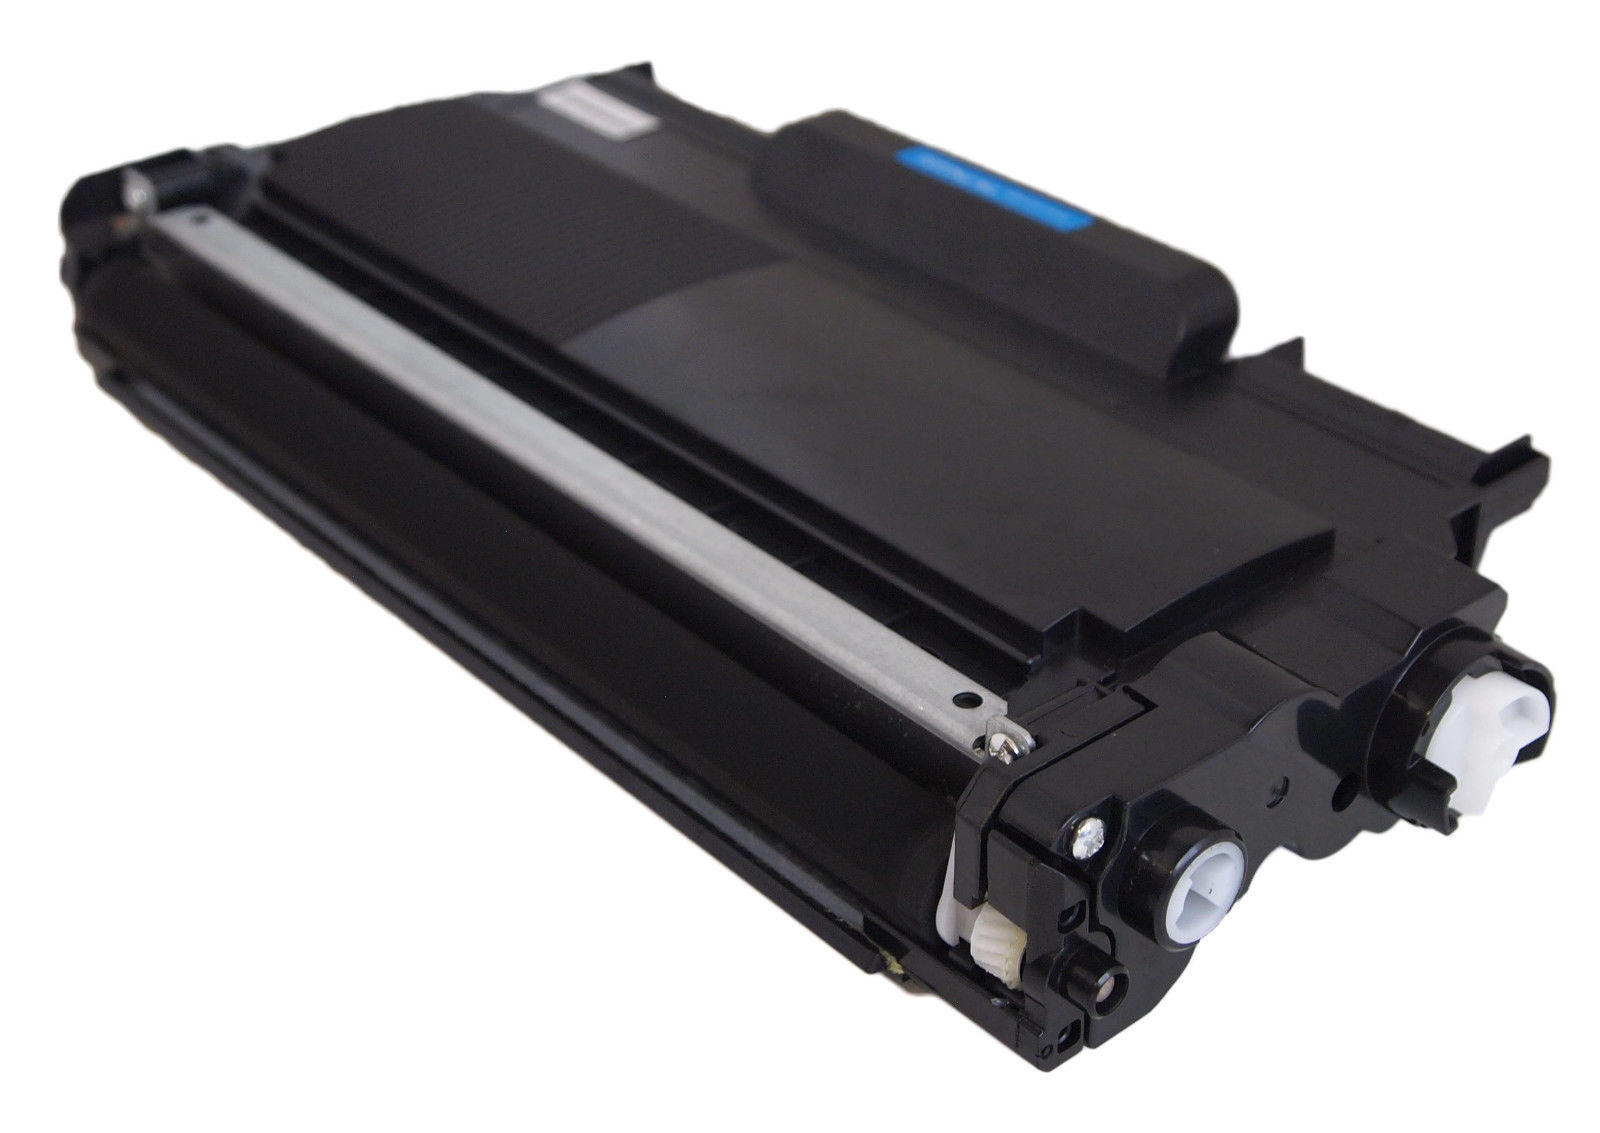 Compatible toner cartridges for Brother printers